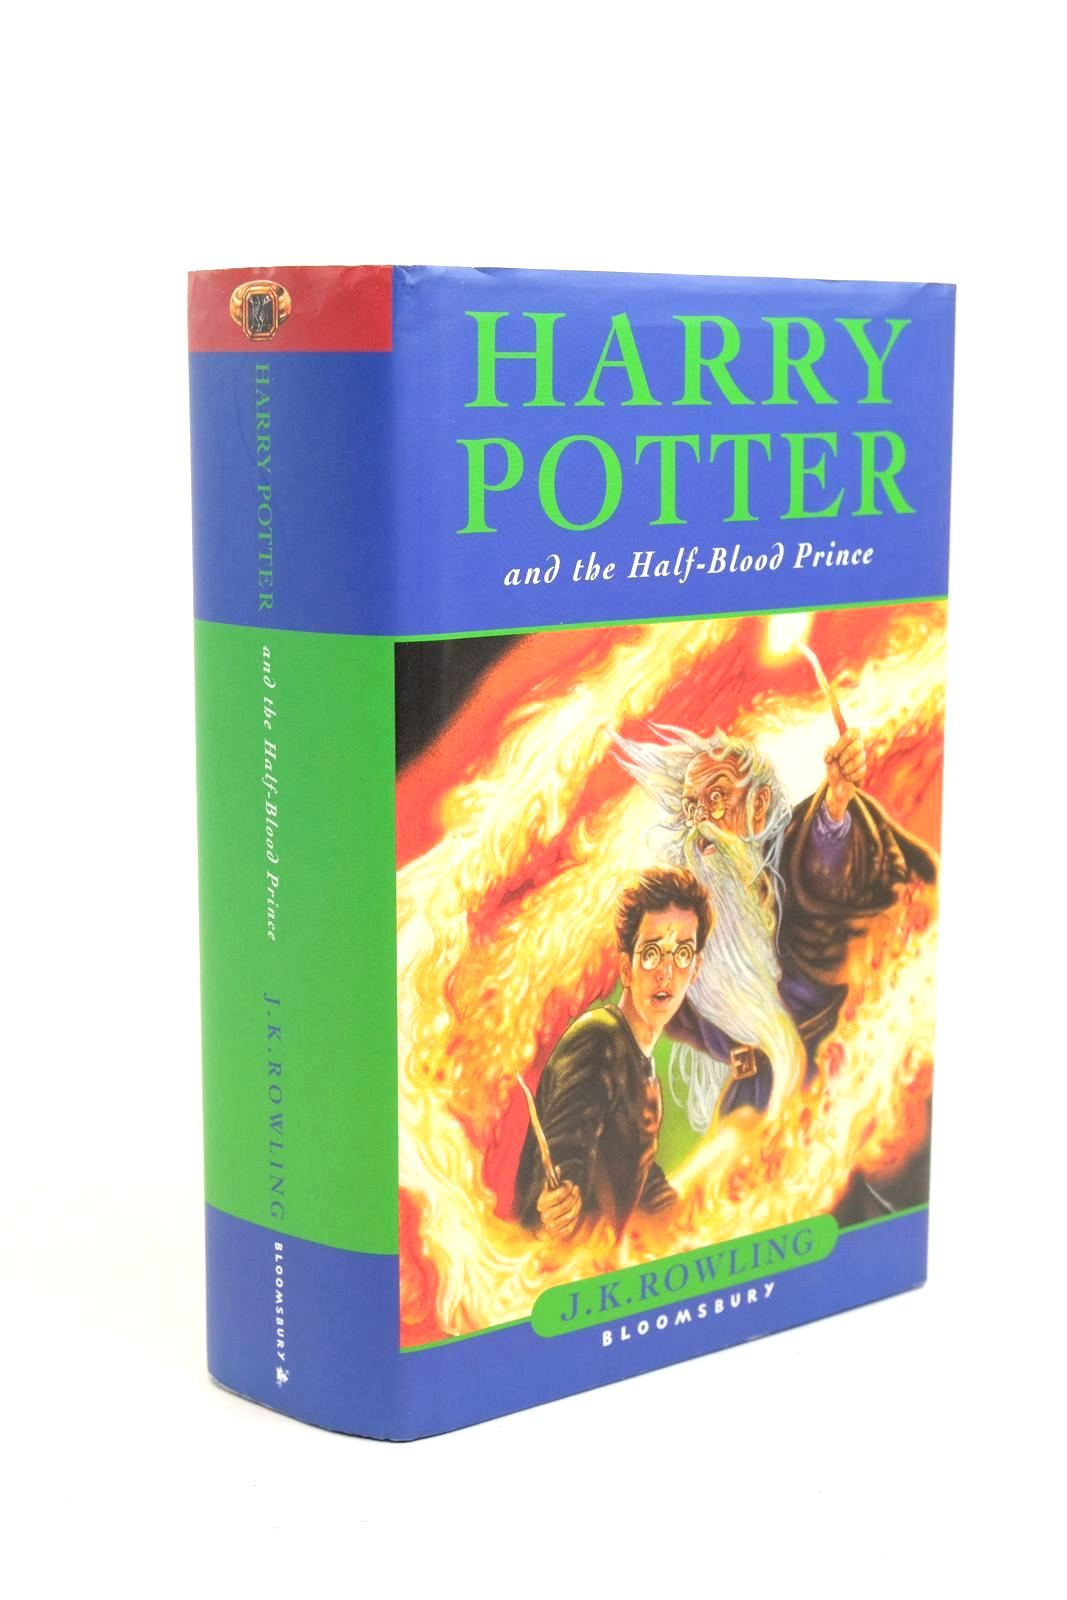 Photo of HARRY POTTER AND THE HALF-BLOOD PRINCE written by Rowling, J.K. published by Bloomsbury (STOCK CODE: 1321174)  for sale by Stella & Rose's Books